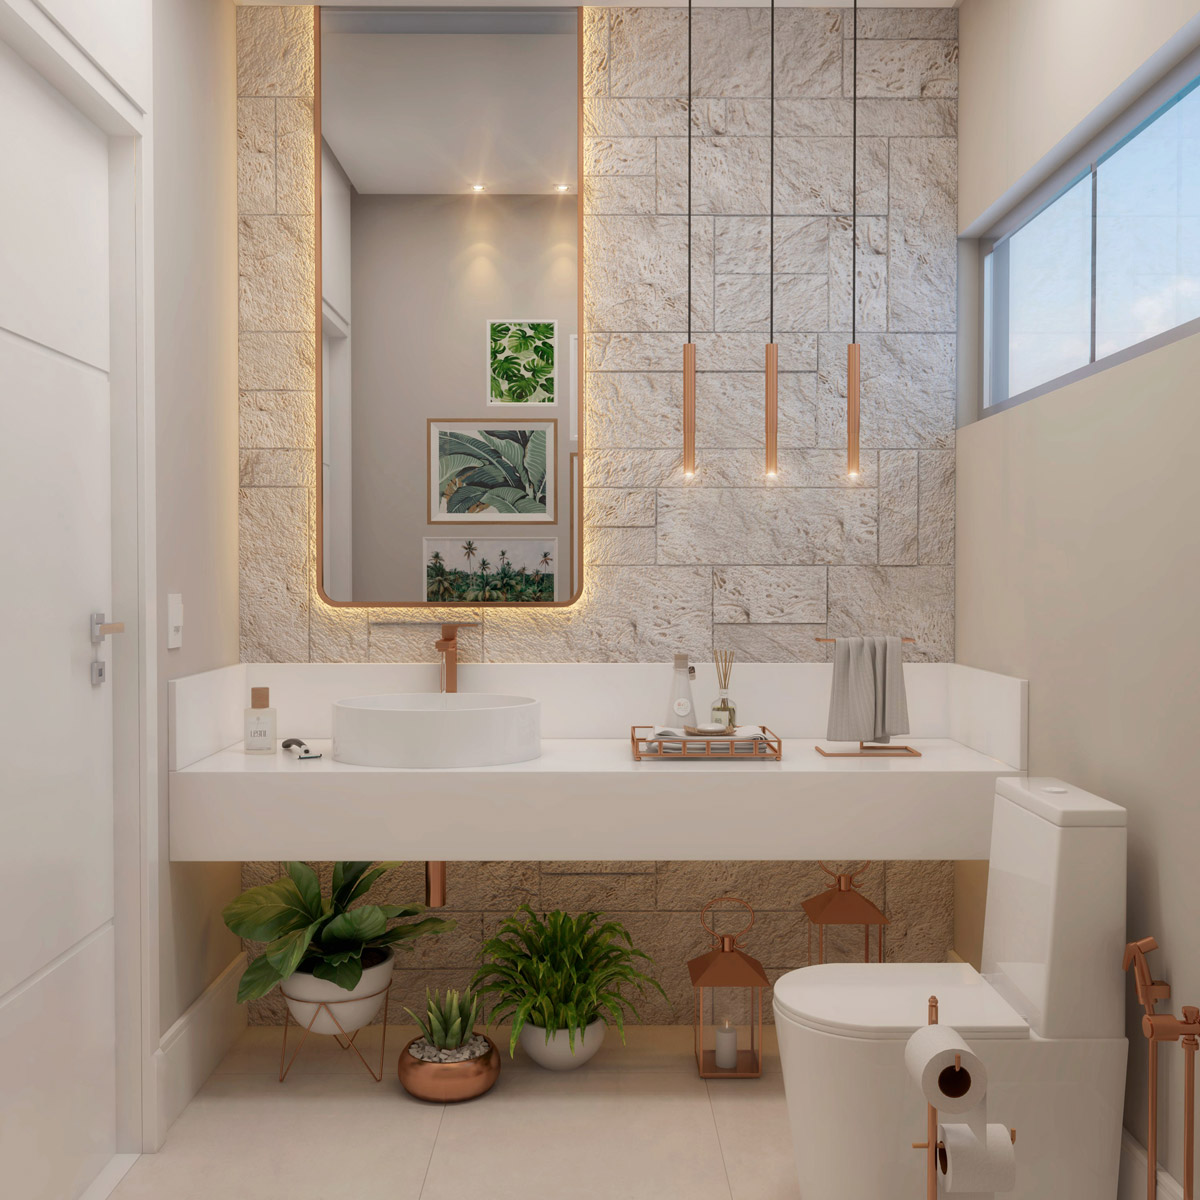 50 Luxury Bathrooms And Tips You Can Copy From Them images 19